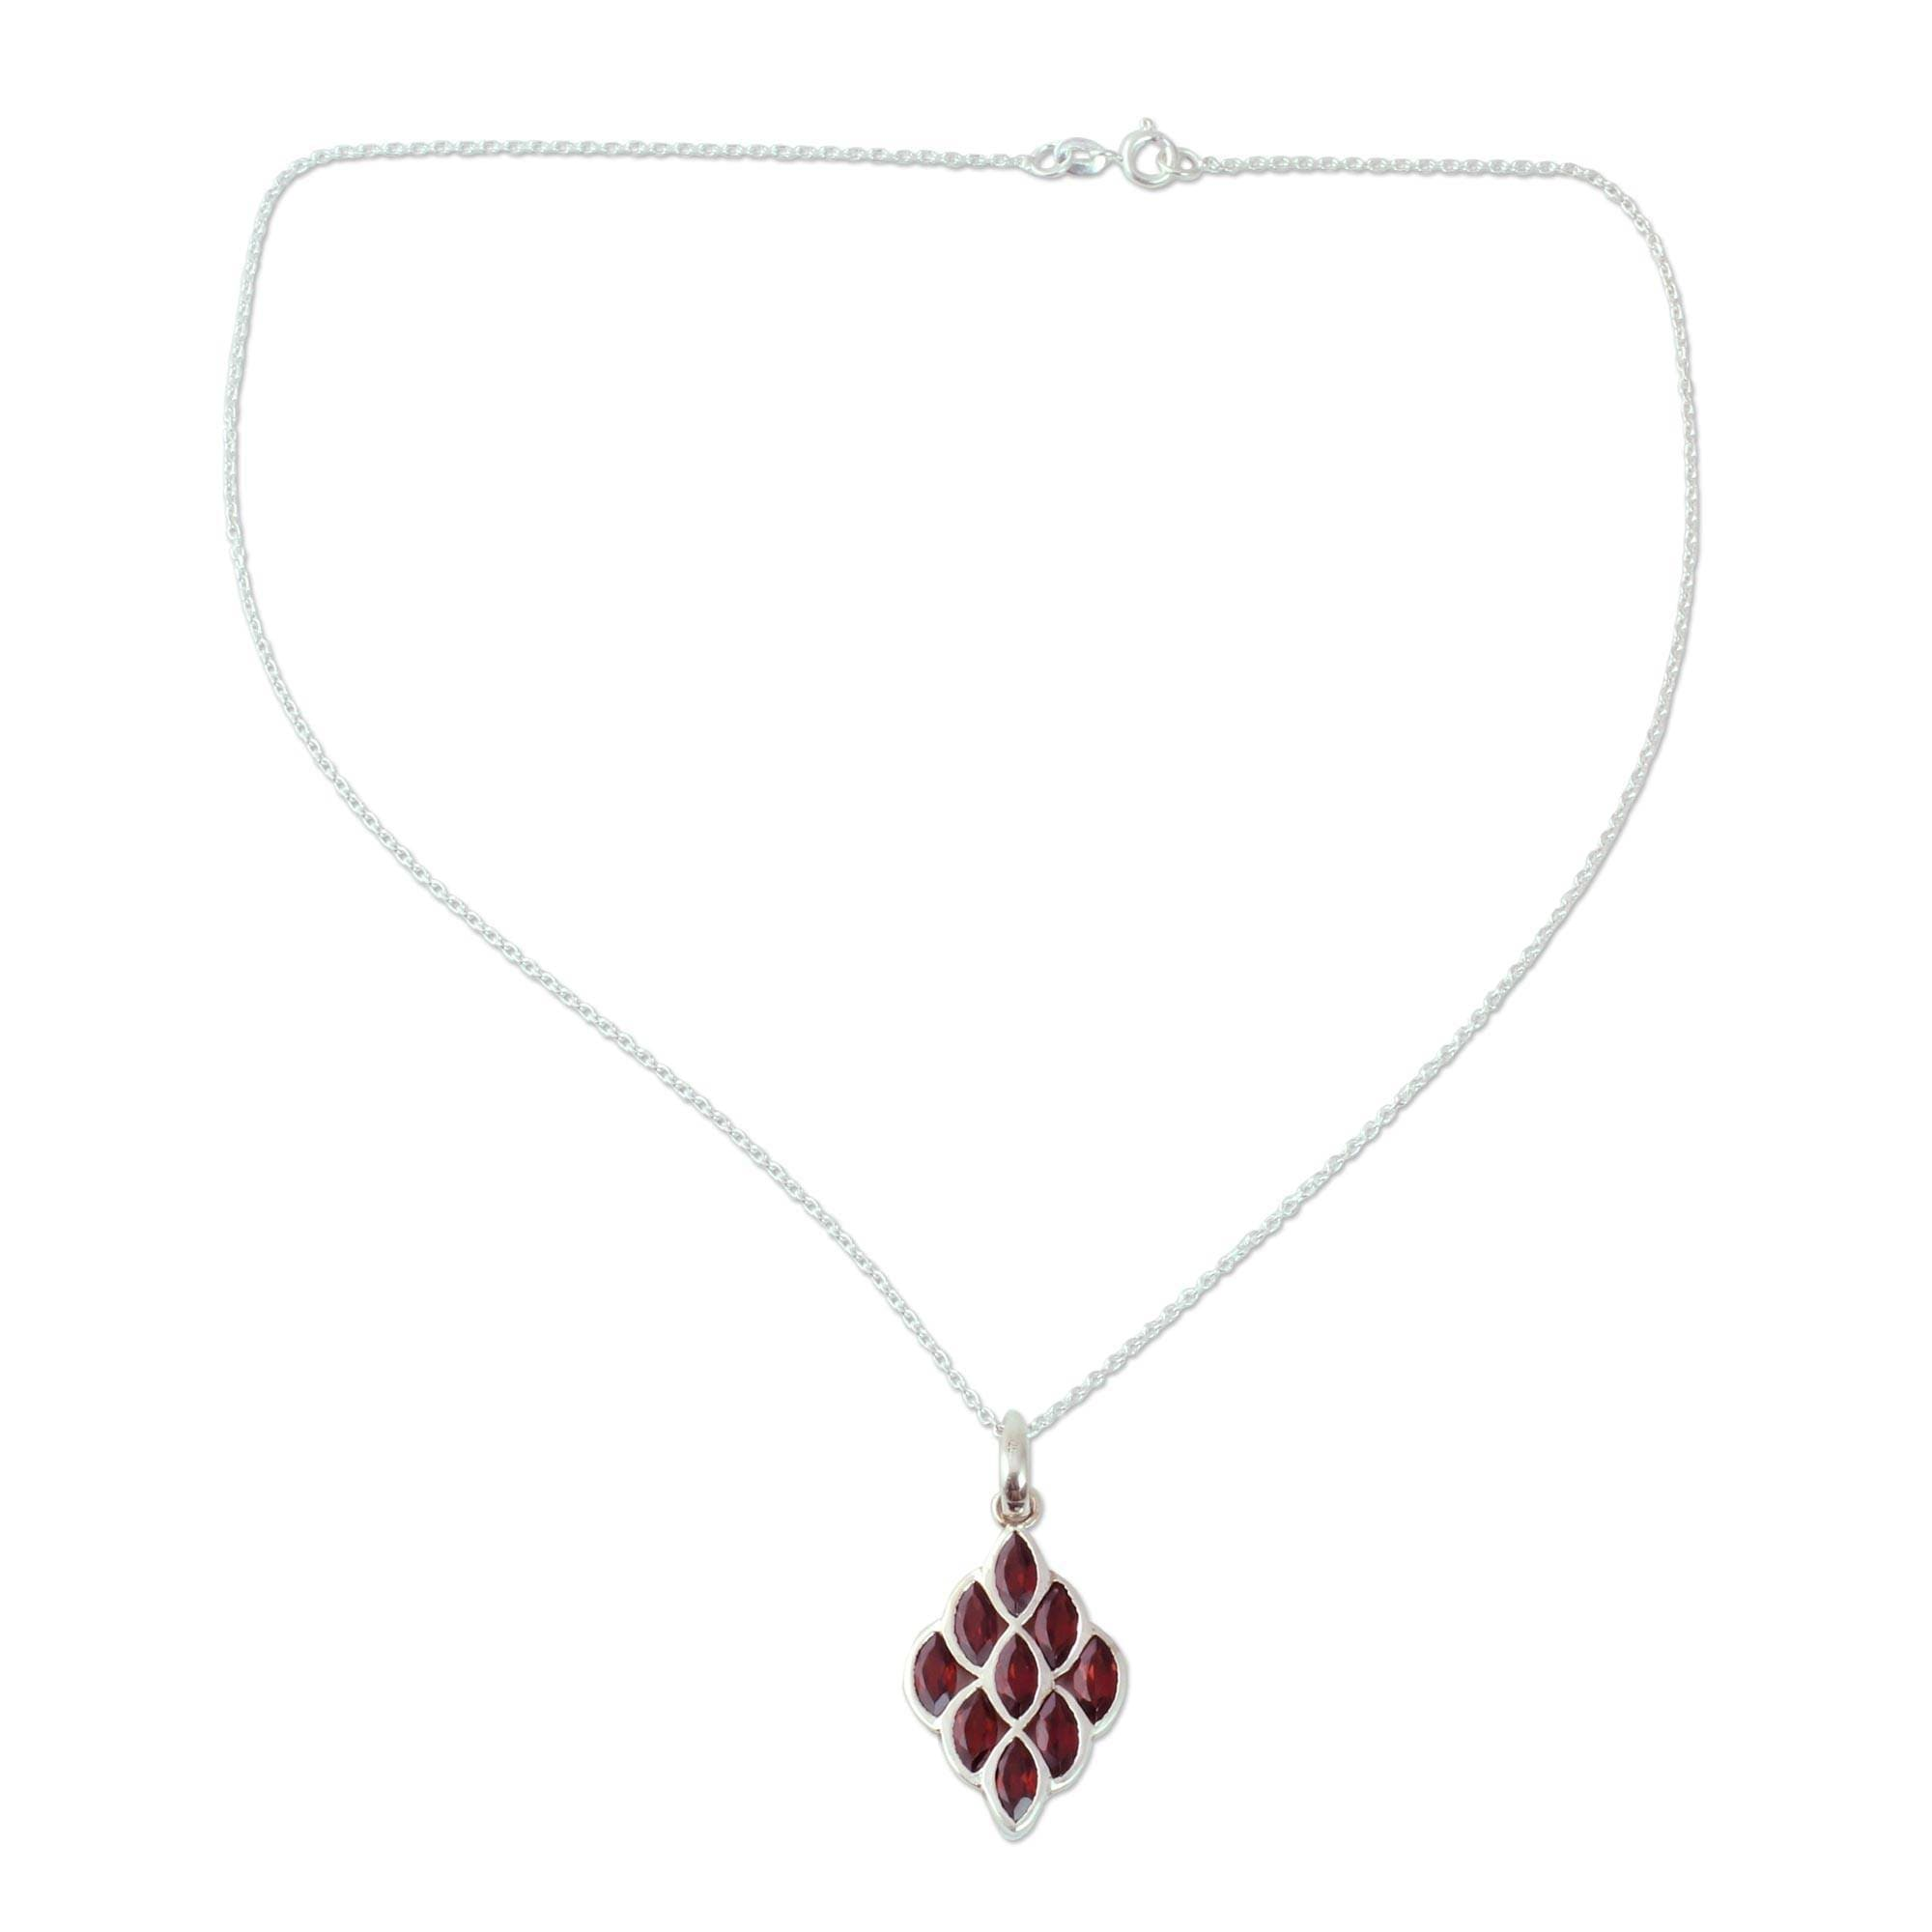 wendy rhodolite garnet necklace pendant nichol products